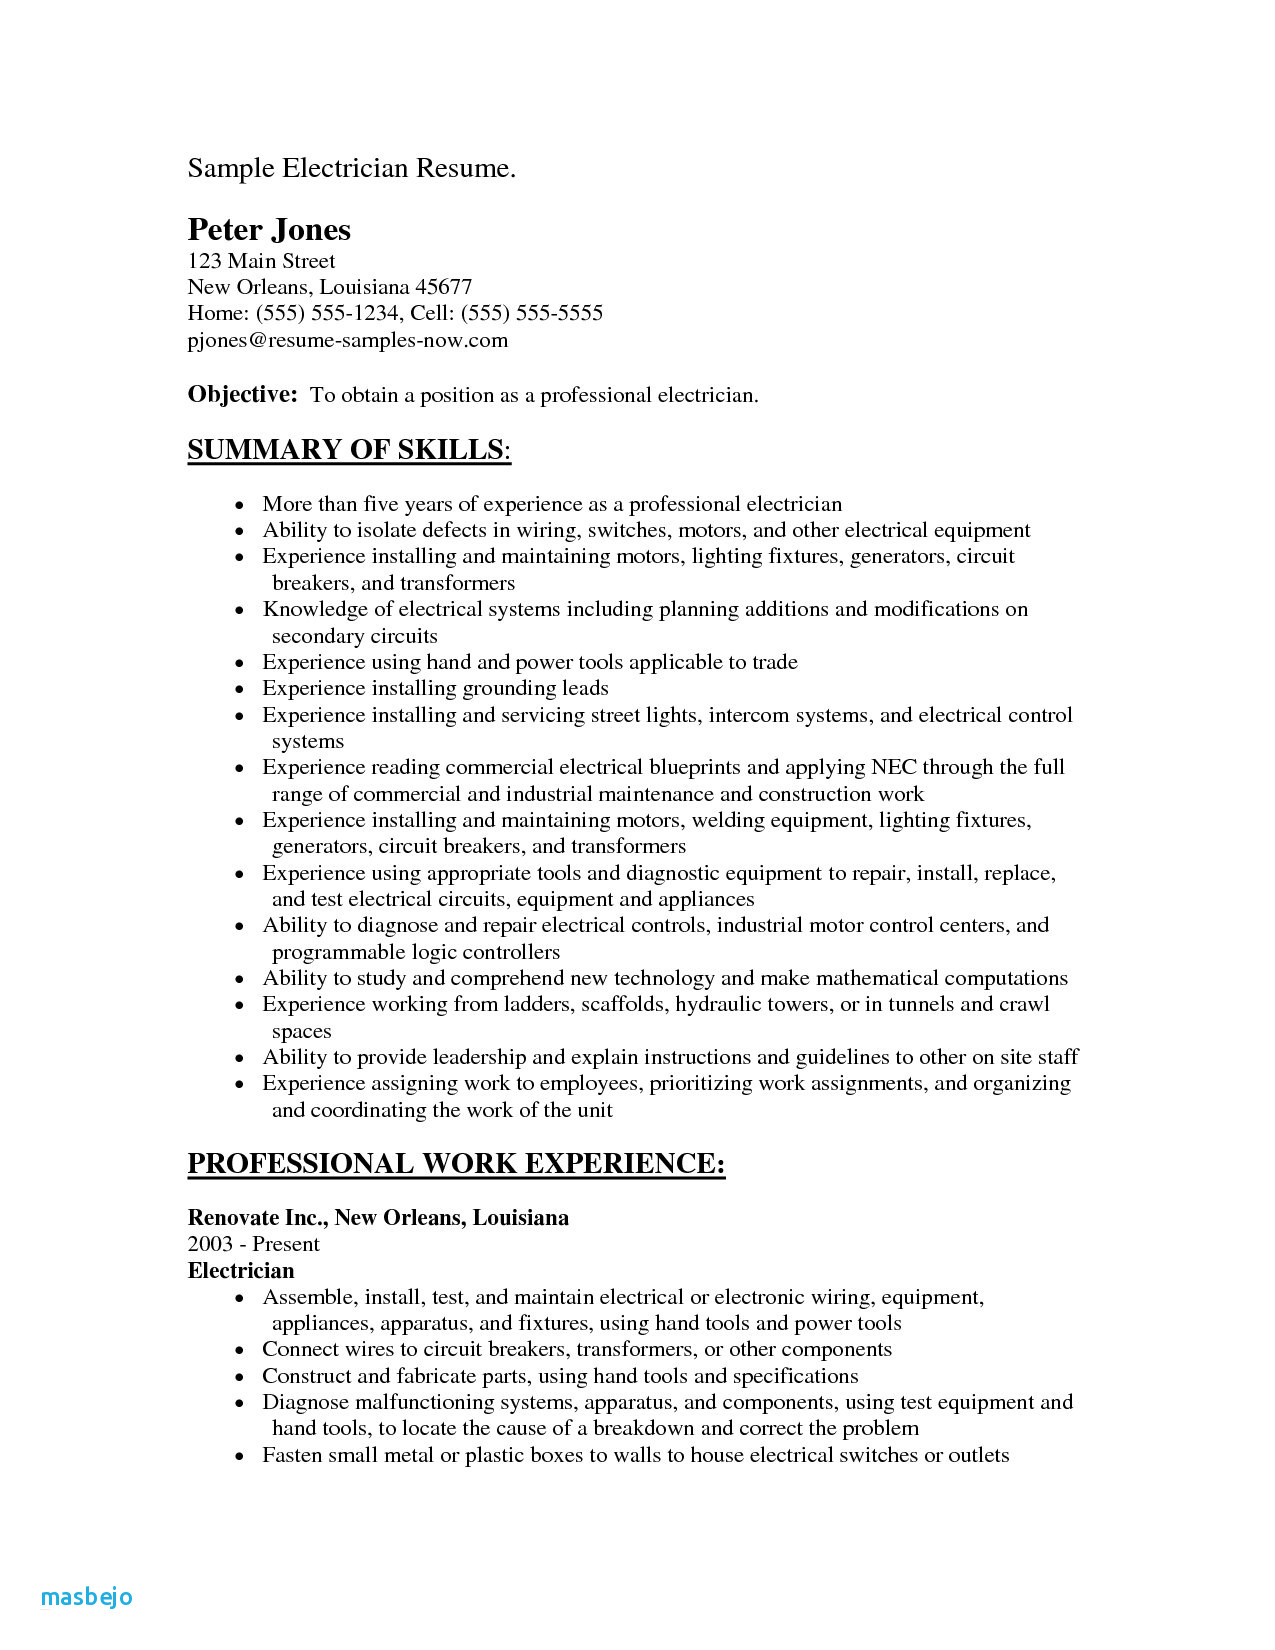 Electrician Apprenticeship Resume Example - Journeyman Electrician Resume Examples 23 Resume Objective for